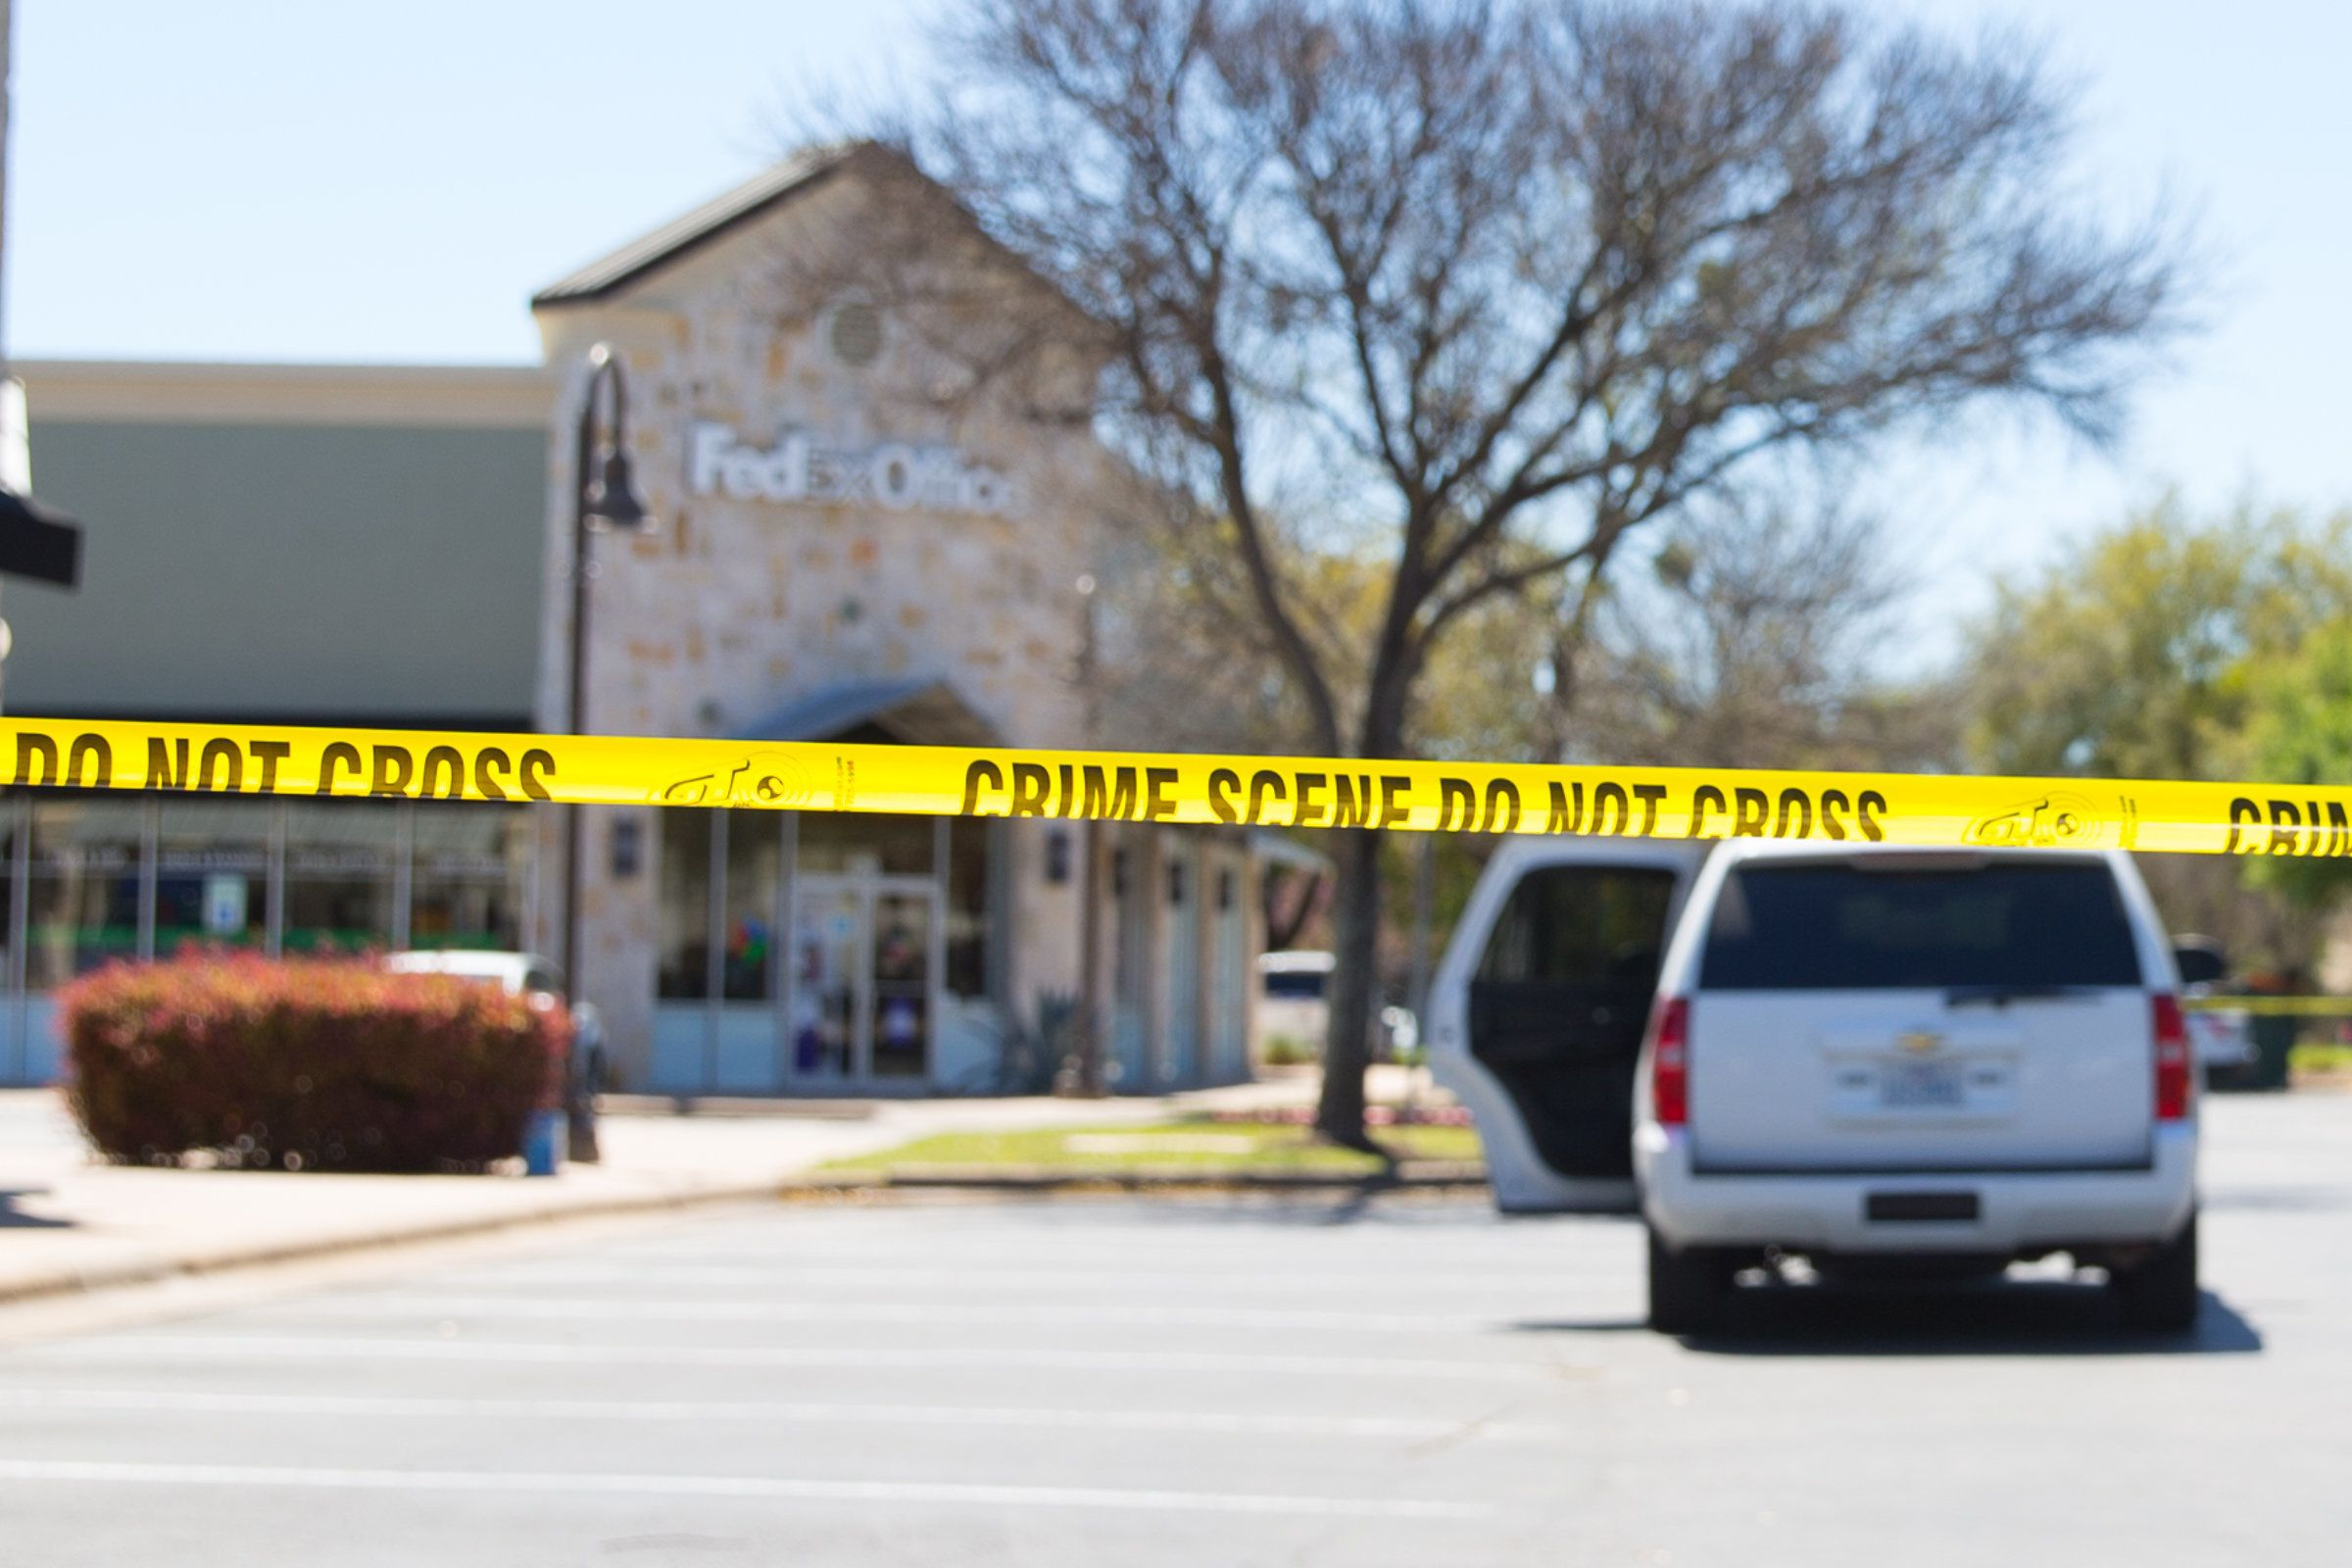 Police and FBI Agents investigate at the Sunset Valley FedEx store located on Brodie Lane in Austin, Texas, which is linked to the package bomb which exploded on a conveyor belt in the sorting facility in Schertz, Texas on March 20, 2018. A package exploded at a FedEx distribution facility in Texas, news reports said, two days after the latest in a series of blasts in Austin attributed to a serial bomber. / AFP PHOTO / SUZANNE CORDEIRO        (Photo credit should read SUZANNE CORDEIRO/AFP/Getty Images)